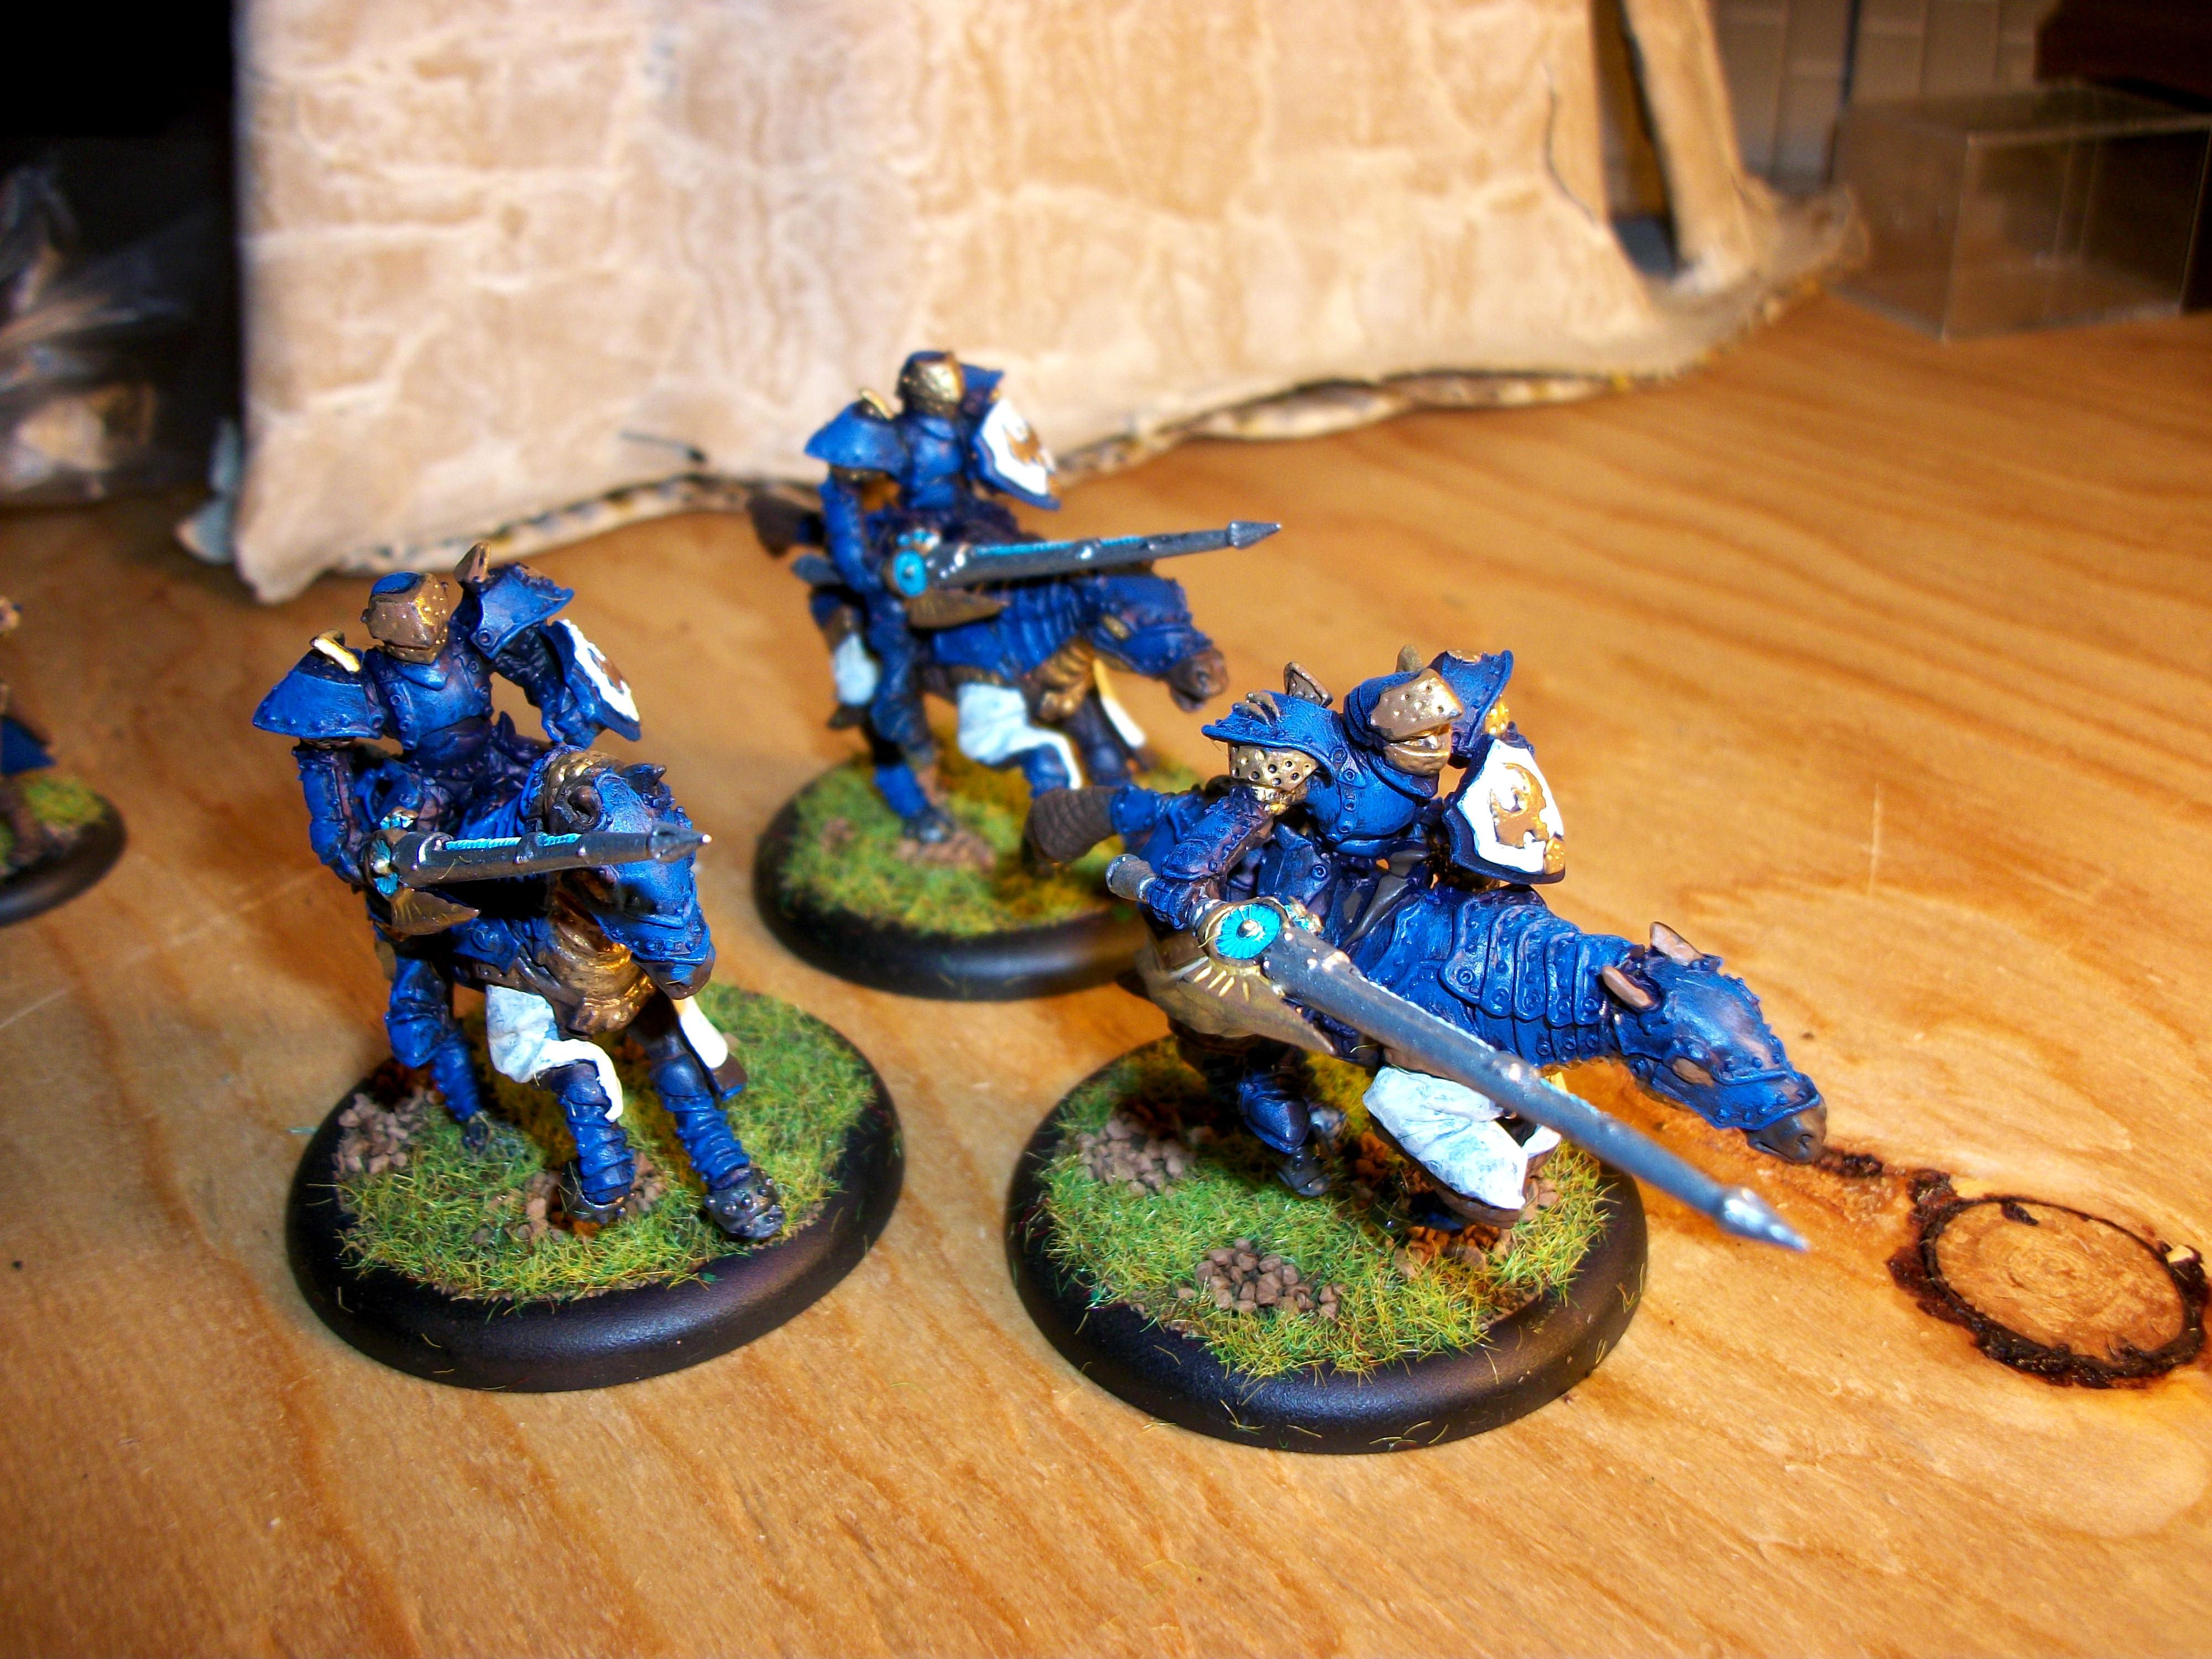 Cavalry, Cygnar, Stormlance, Unit, Warmachine